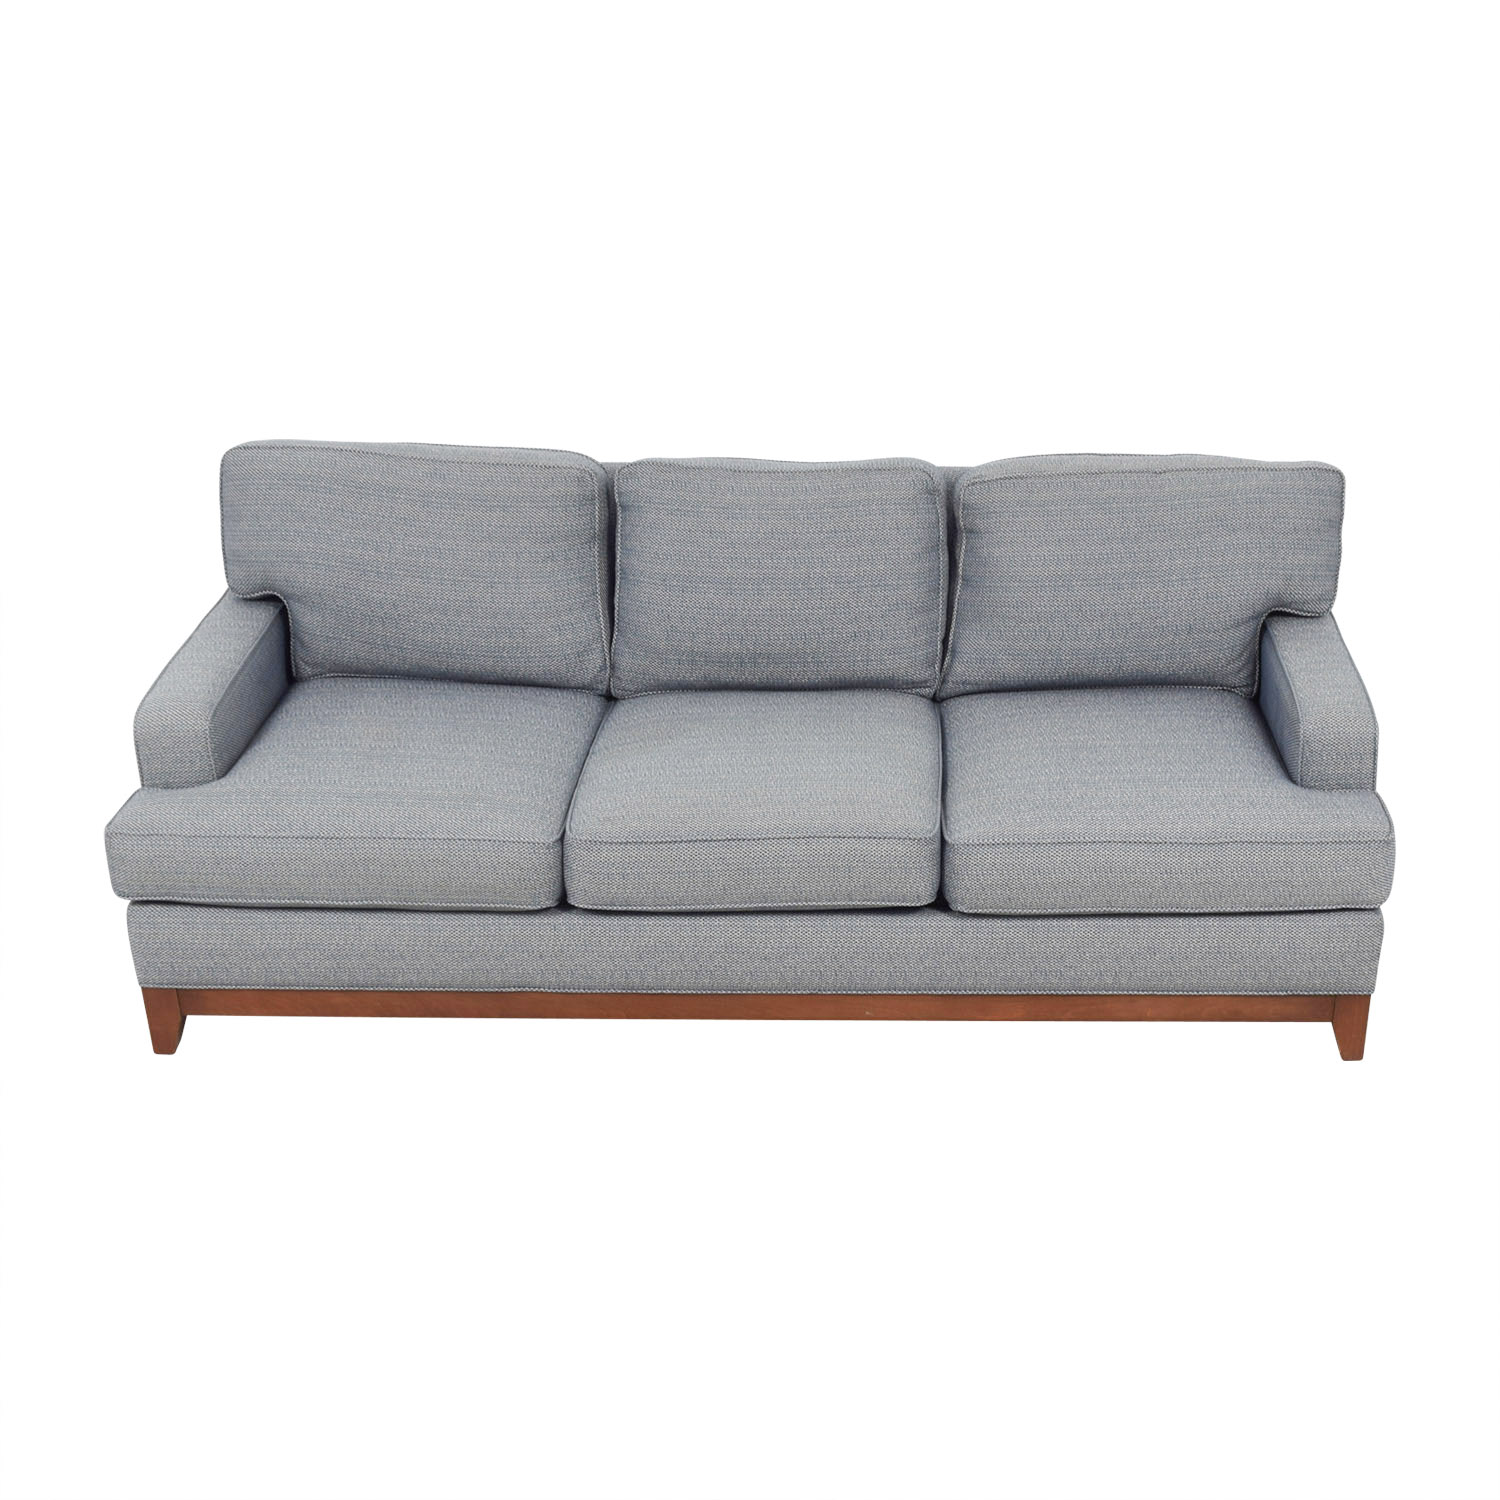 ... Ethan Allen Ethan Allen Blue Three Cushion Couch For Sale ...